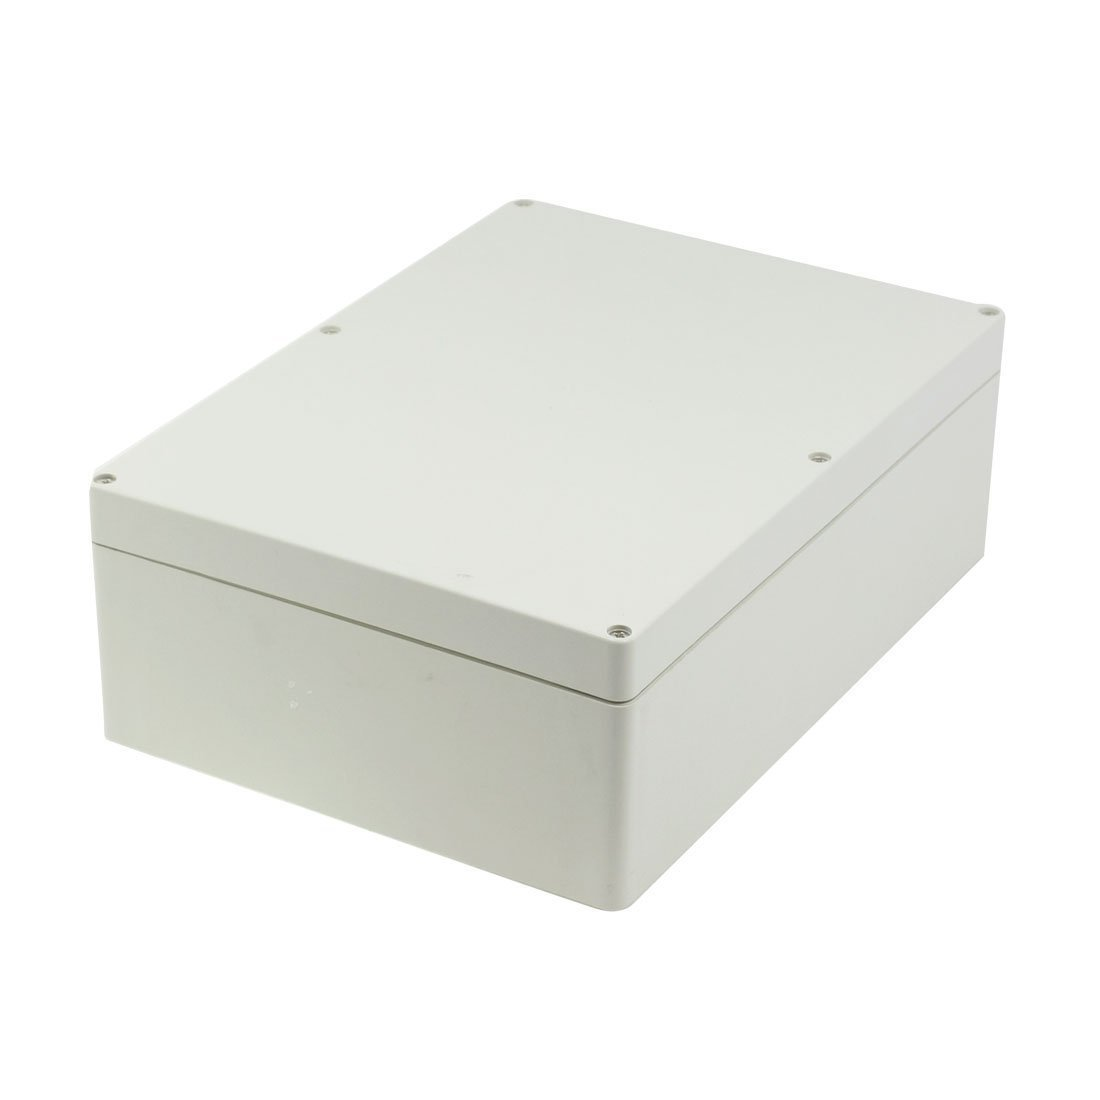 290mm x 210mm x 100mm Waterproof Plastic Enclosure Case DIY Junction Box Sourcingmap a13060300ux0906